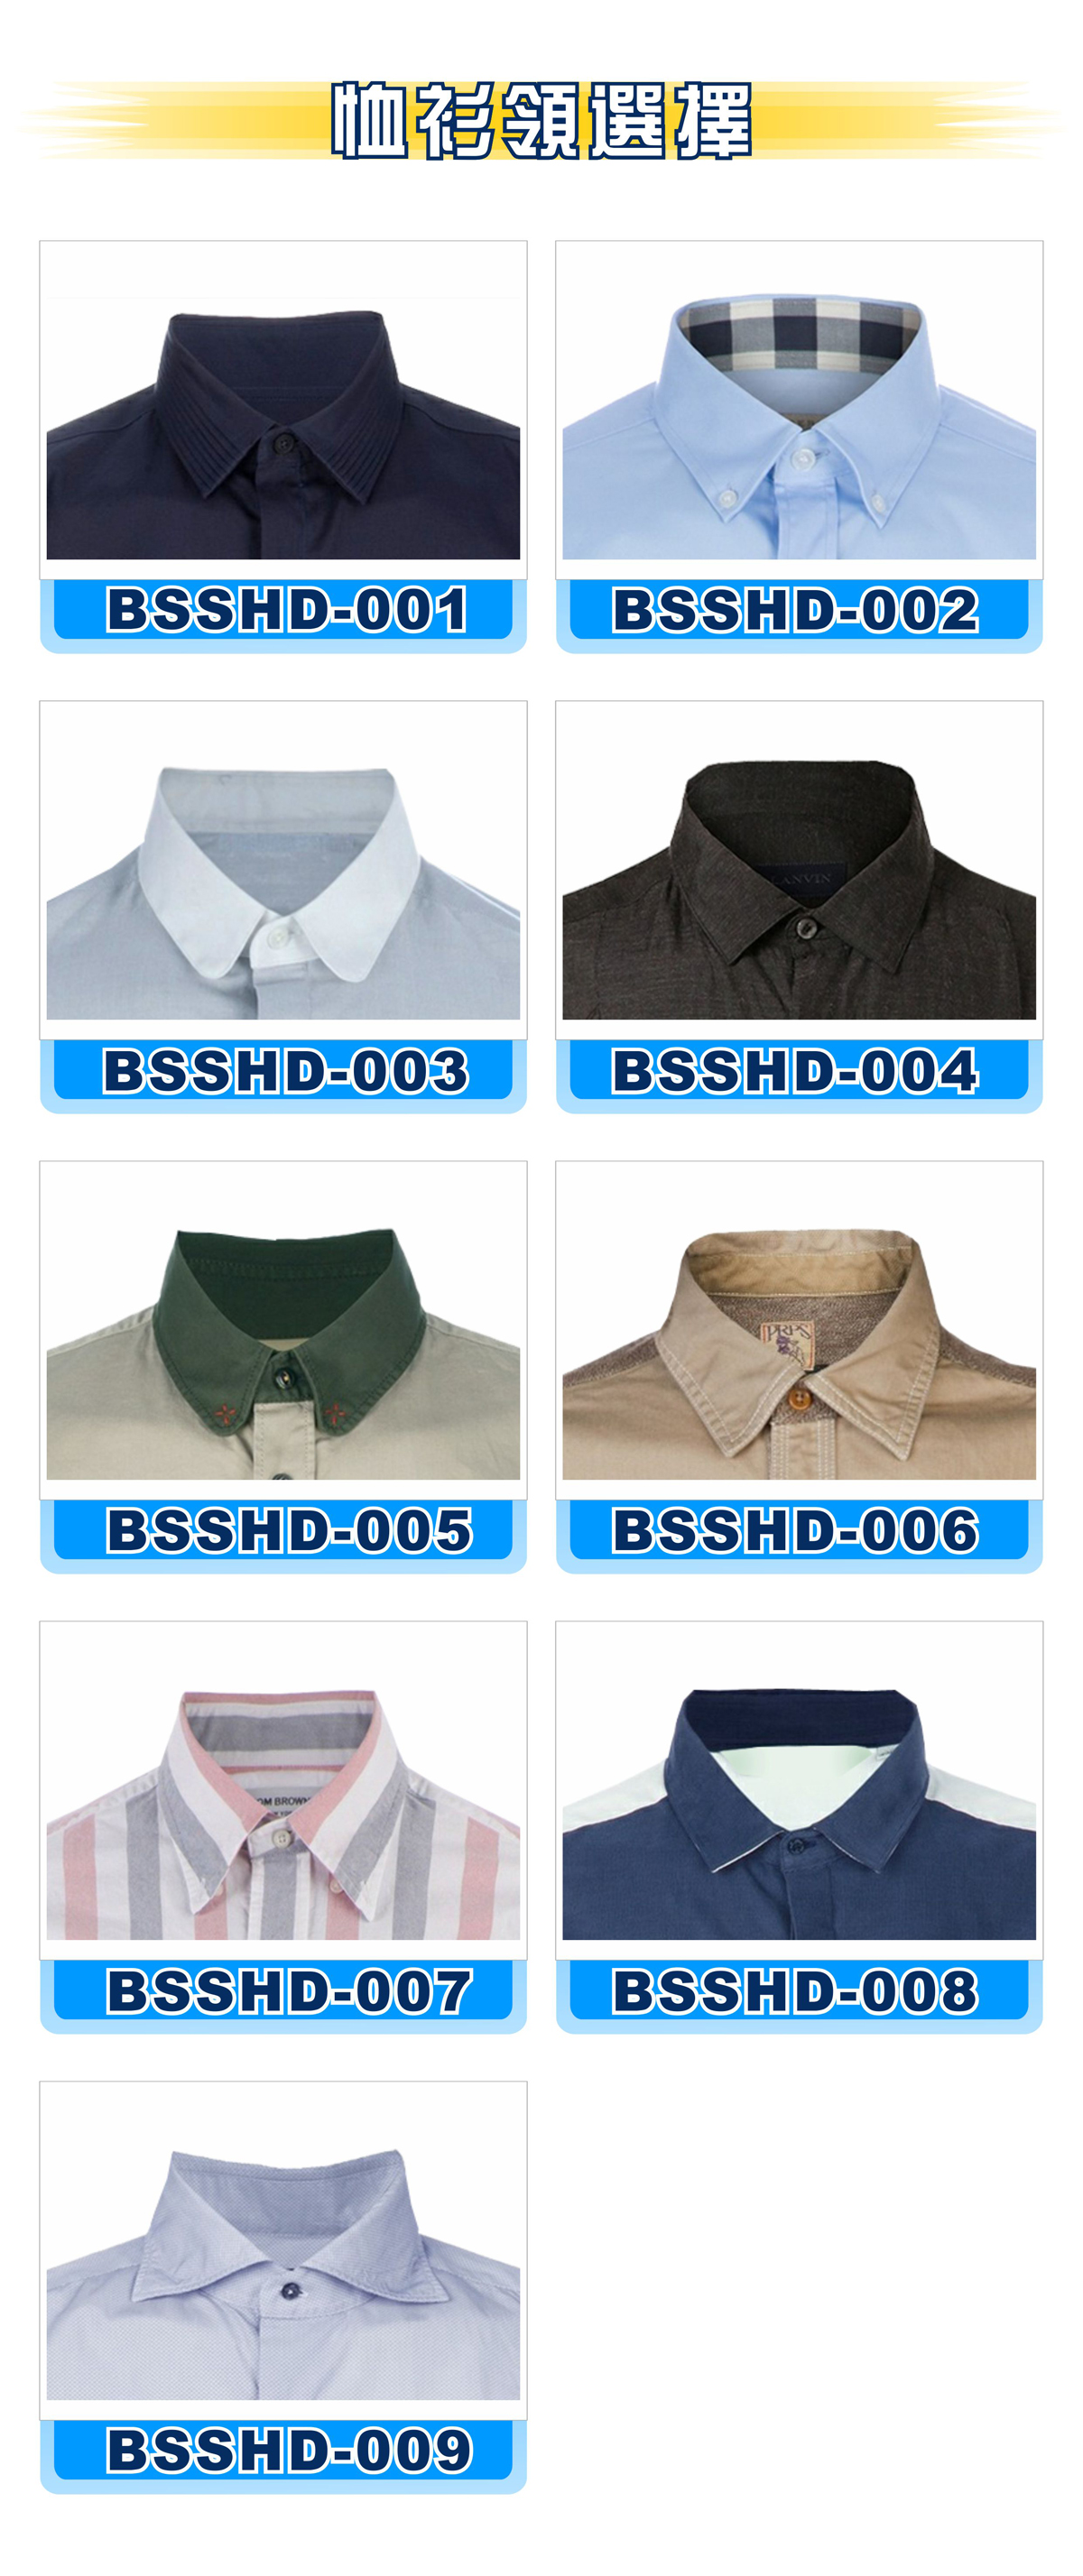 Options for shirt collars